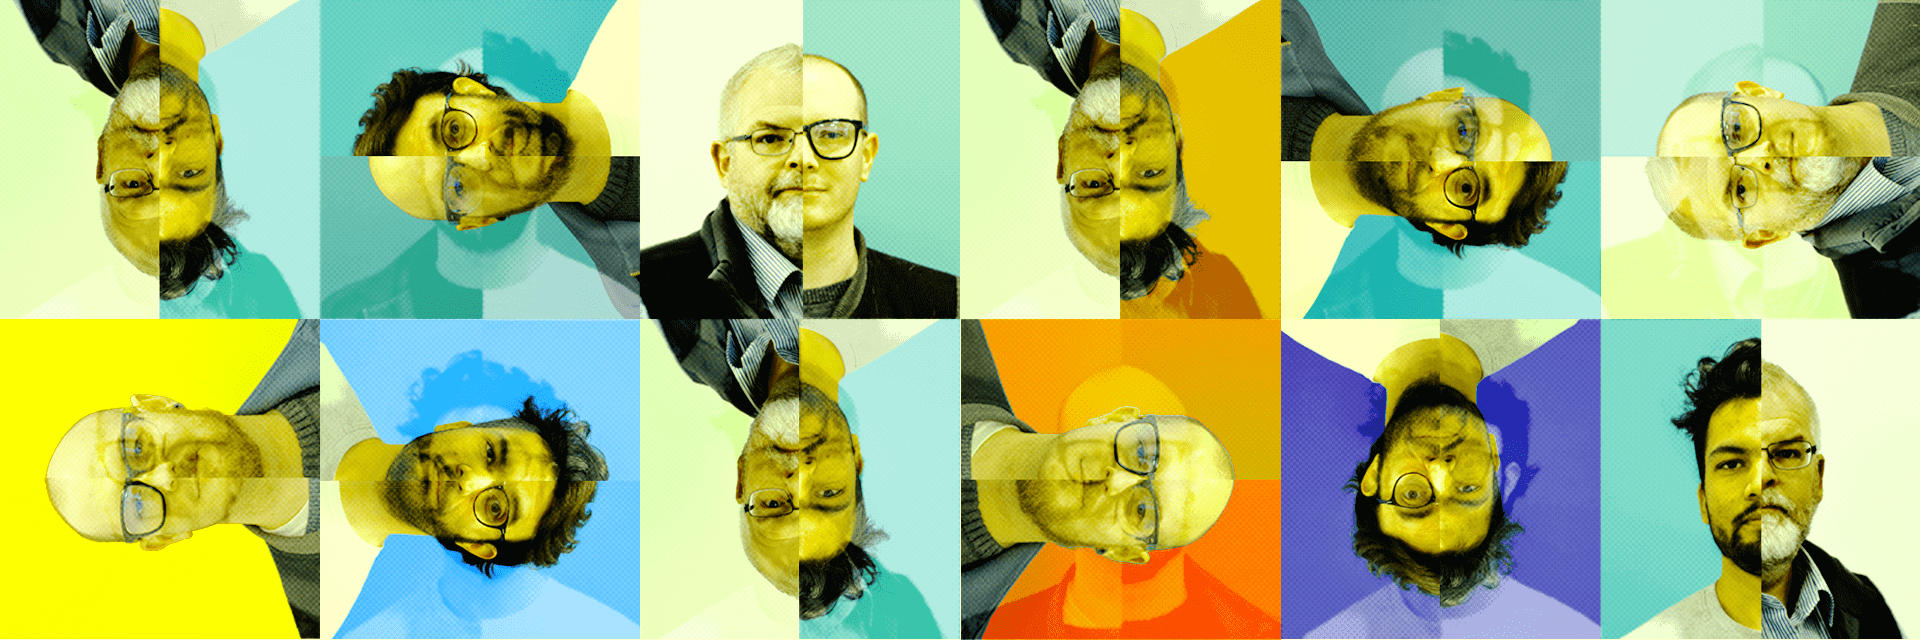 The Hustle Team mosaic image